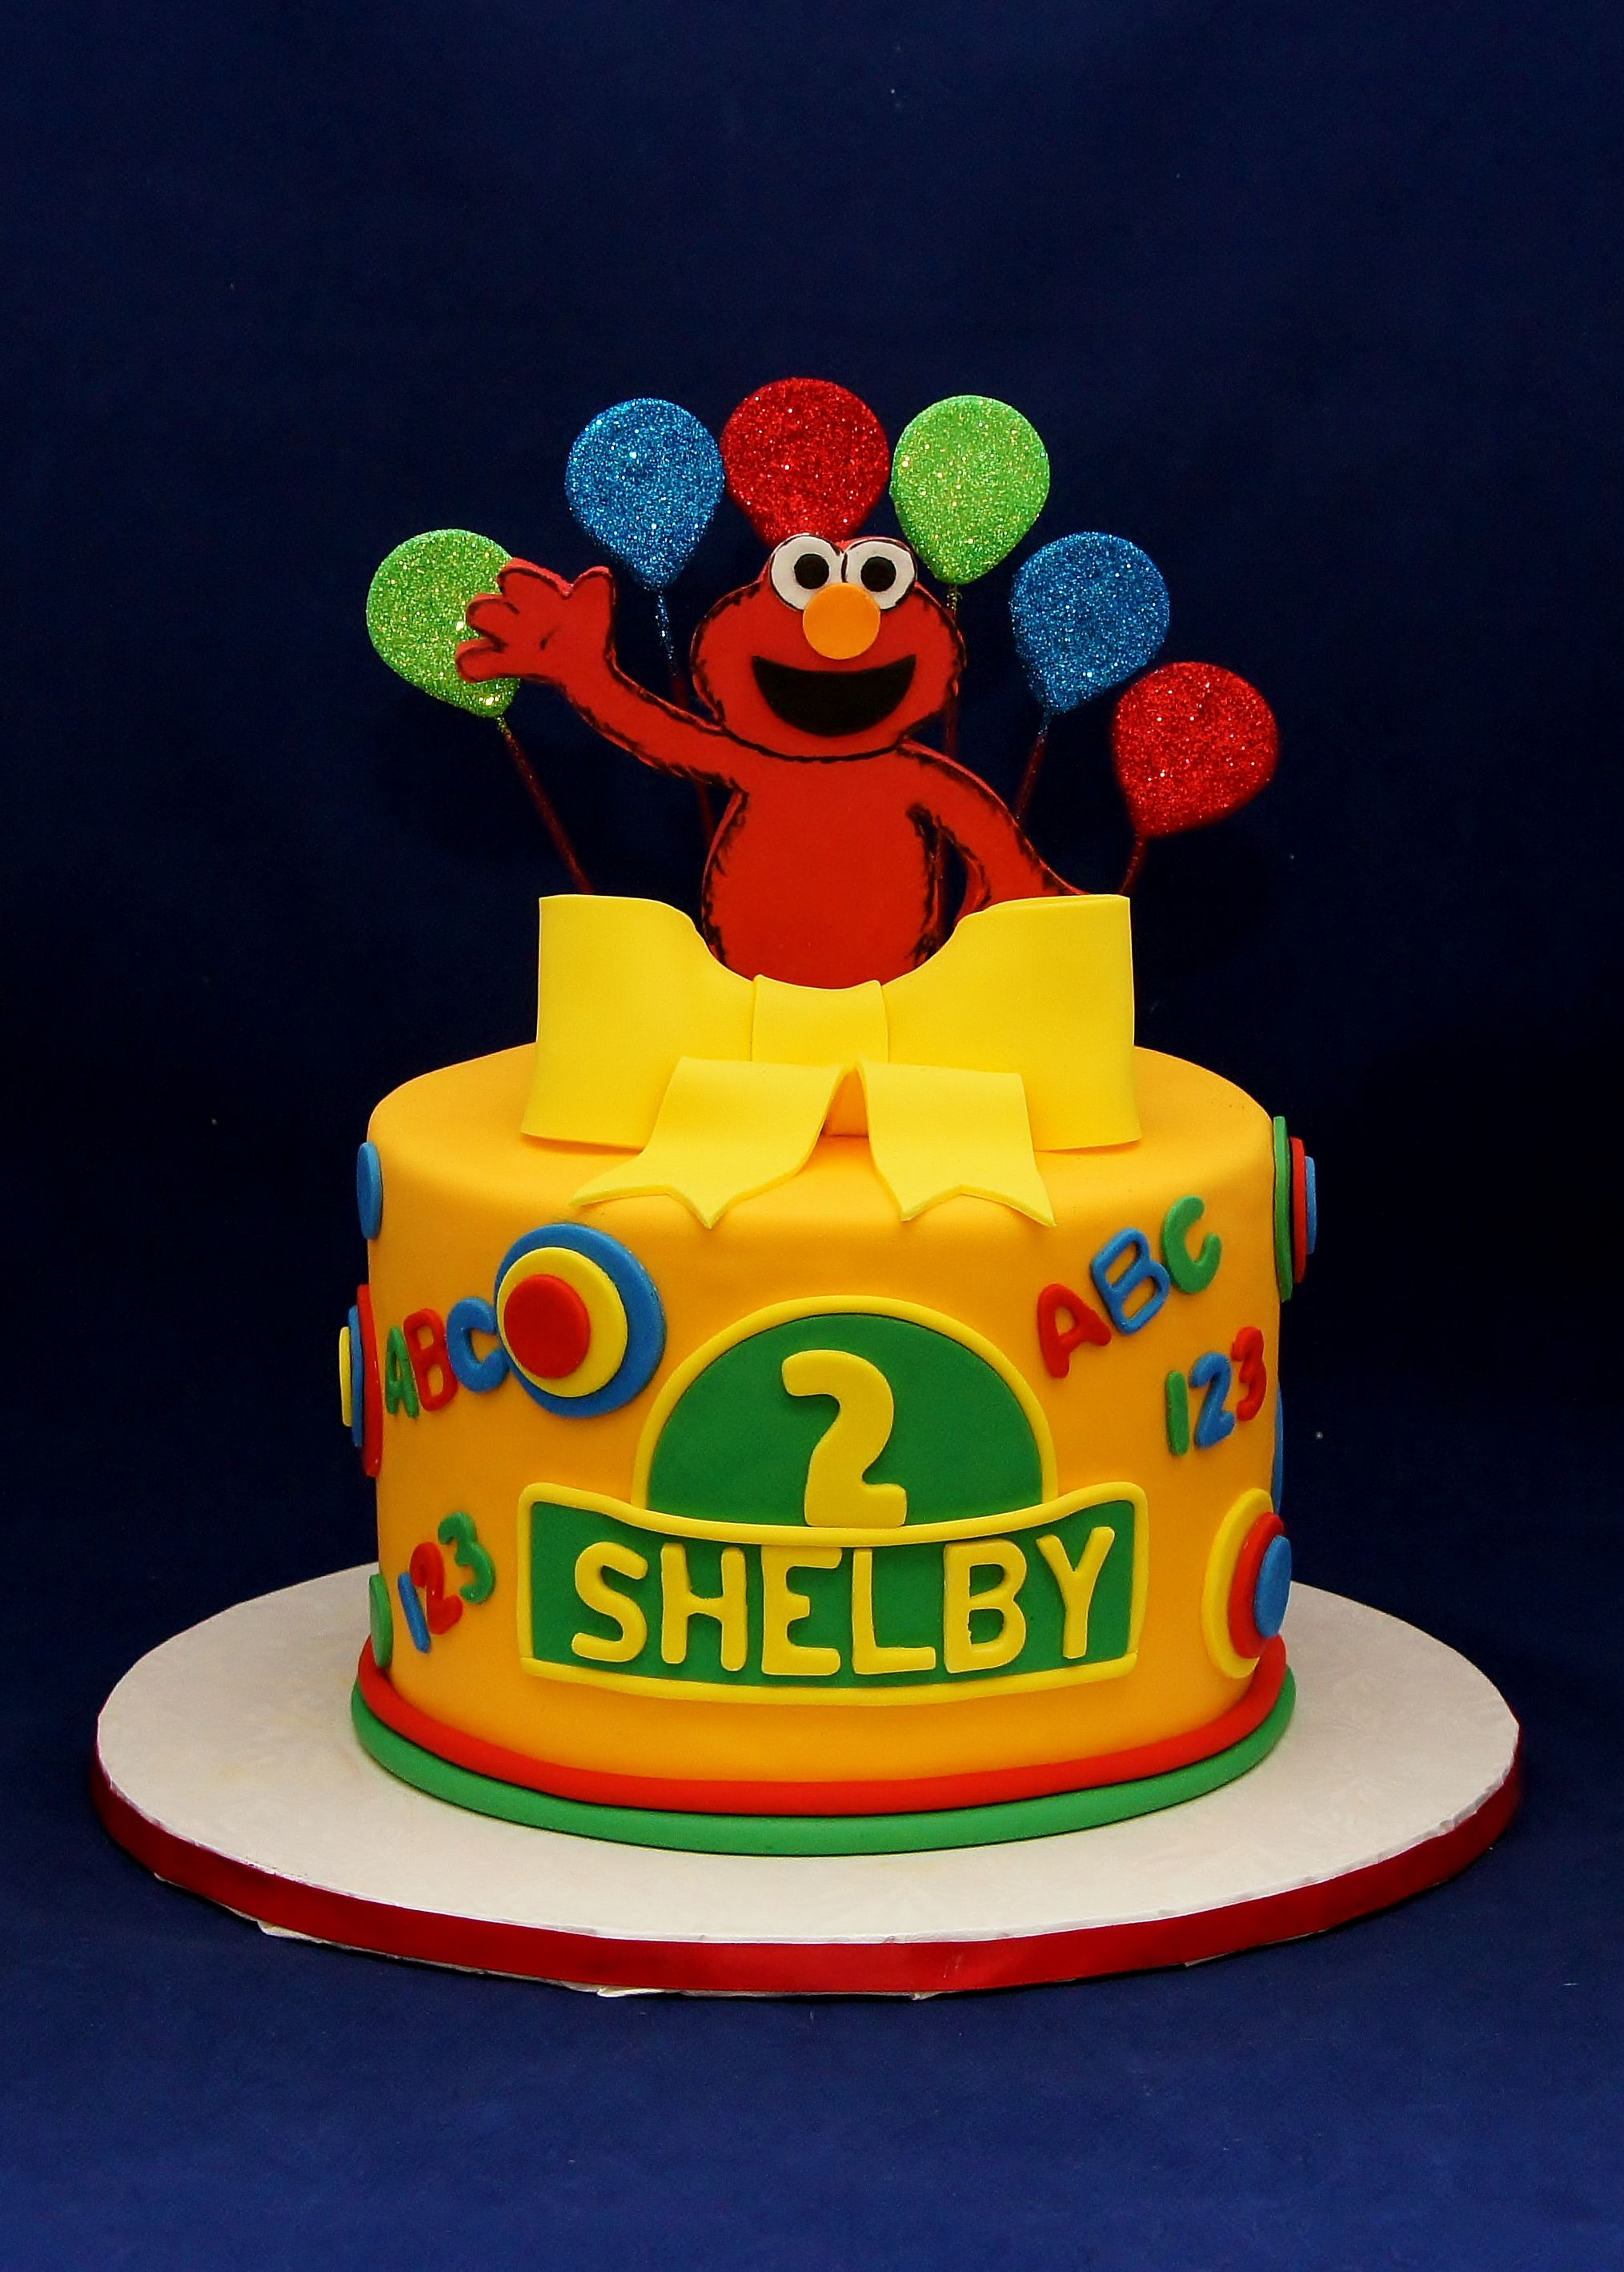 Elmo Surprise Cake For Shelby